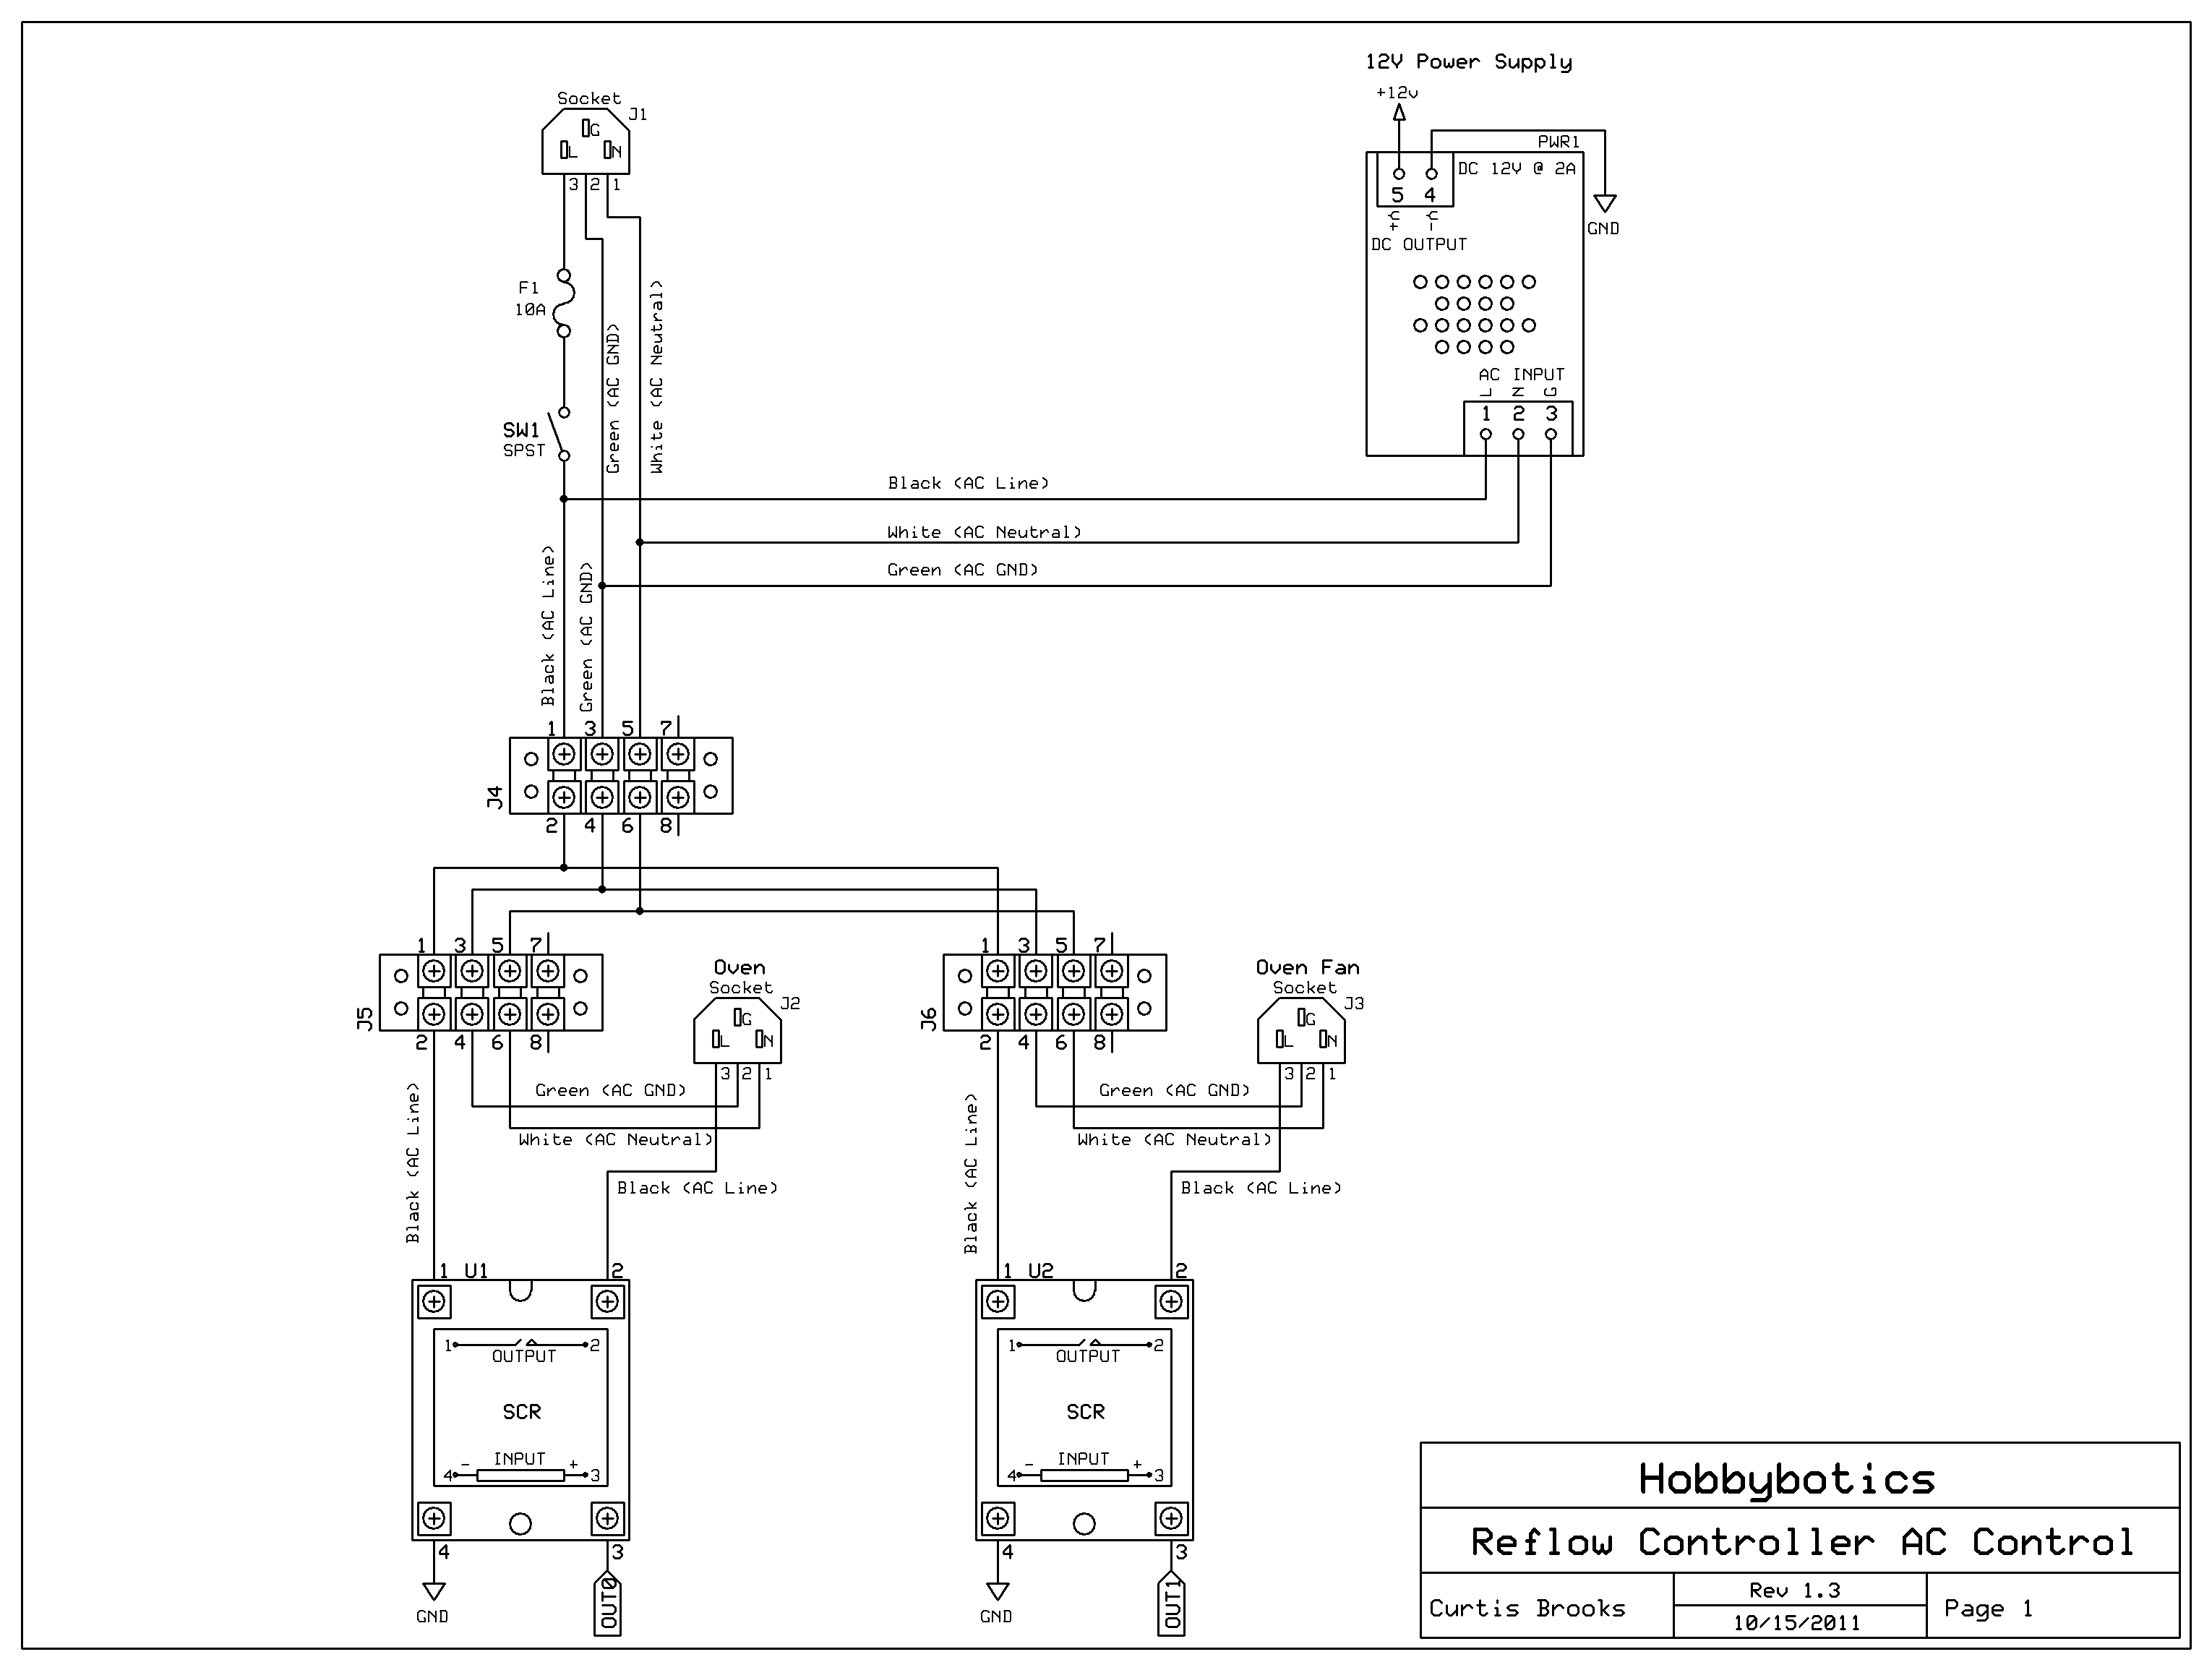 reflow controller ac control v1 3 wiring diagram1 oven wiring diagram 110v wiring diagram simonand 110v plug wiring diagram uk at soozxer.org